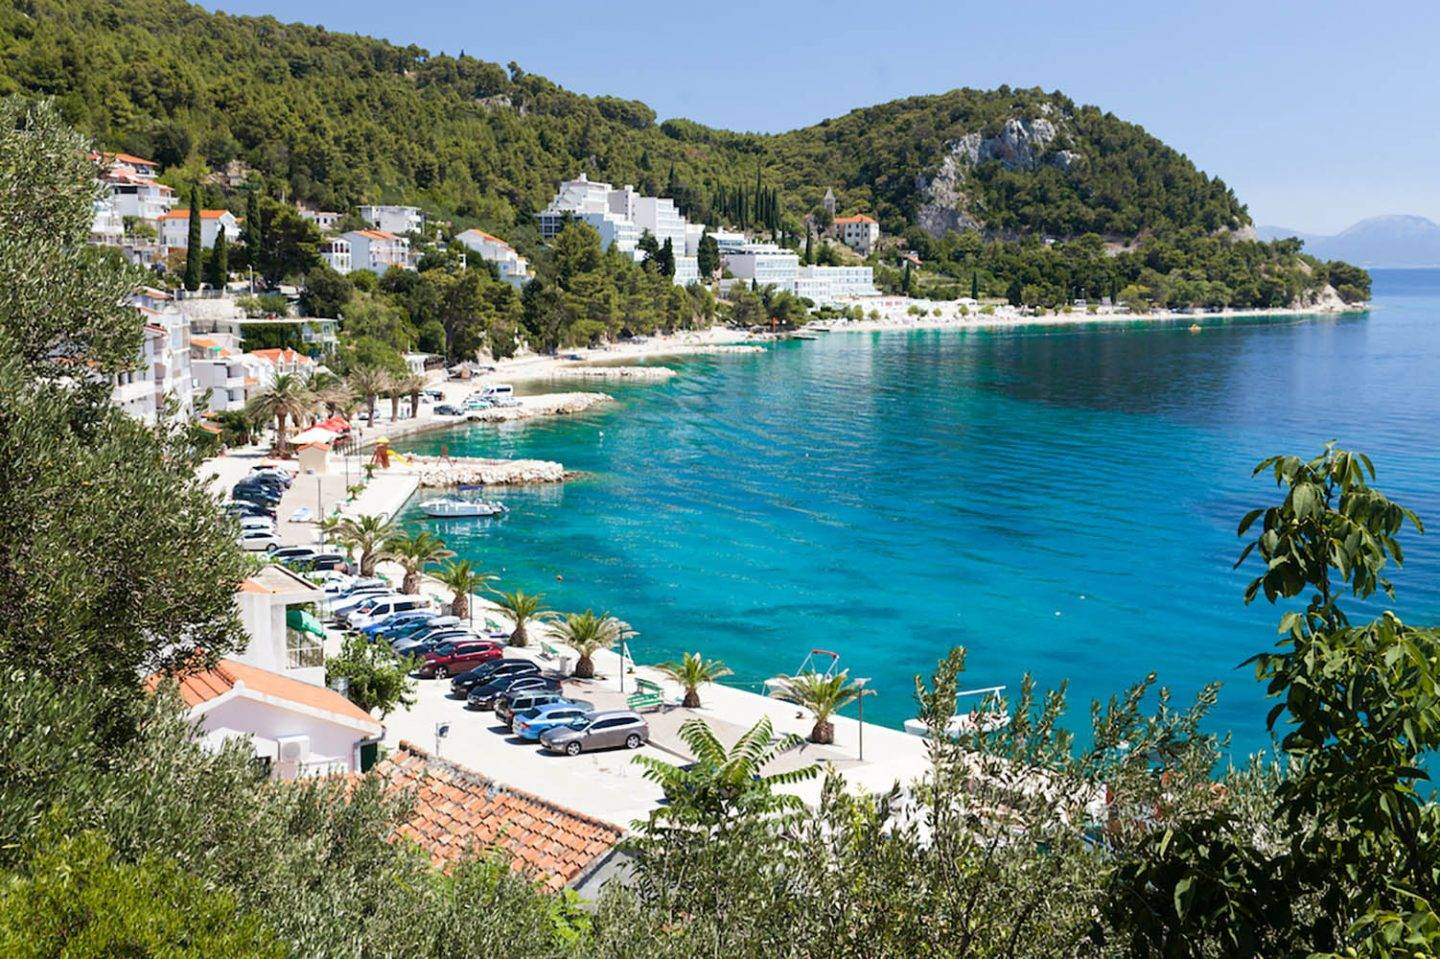 Overlook the cutest harbours in Croatia on your visit to Makarska Riviera